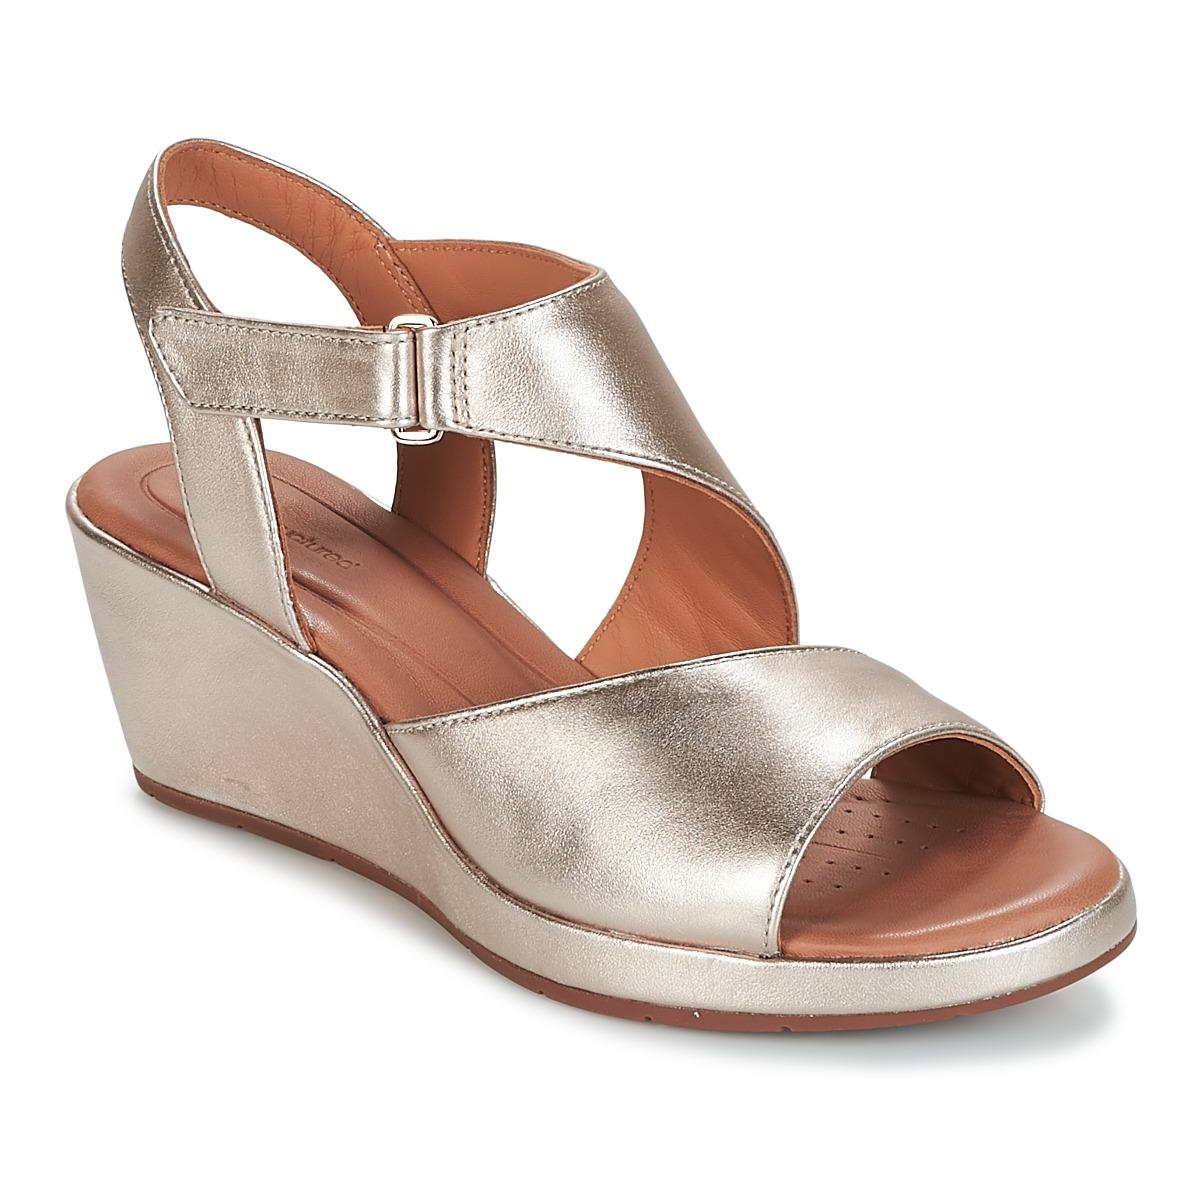 ee030dc2c3 Clarks Un Plaza Sling Women's Sandals In Gold in Metallic - Lyst